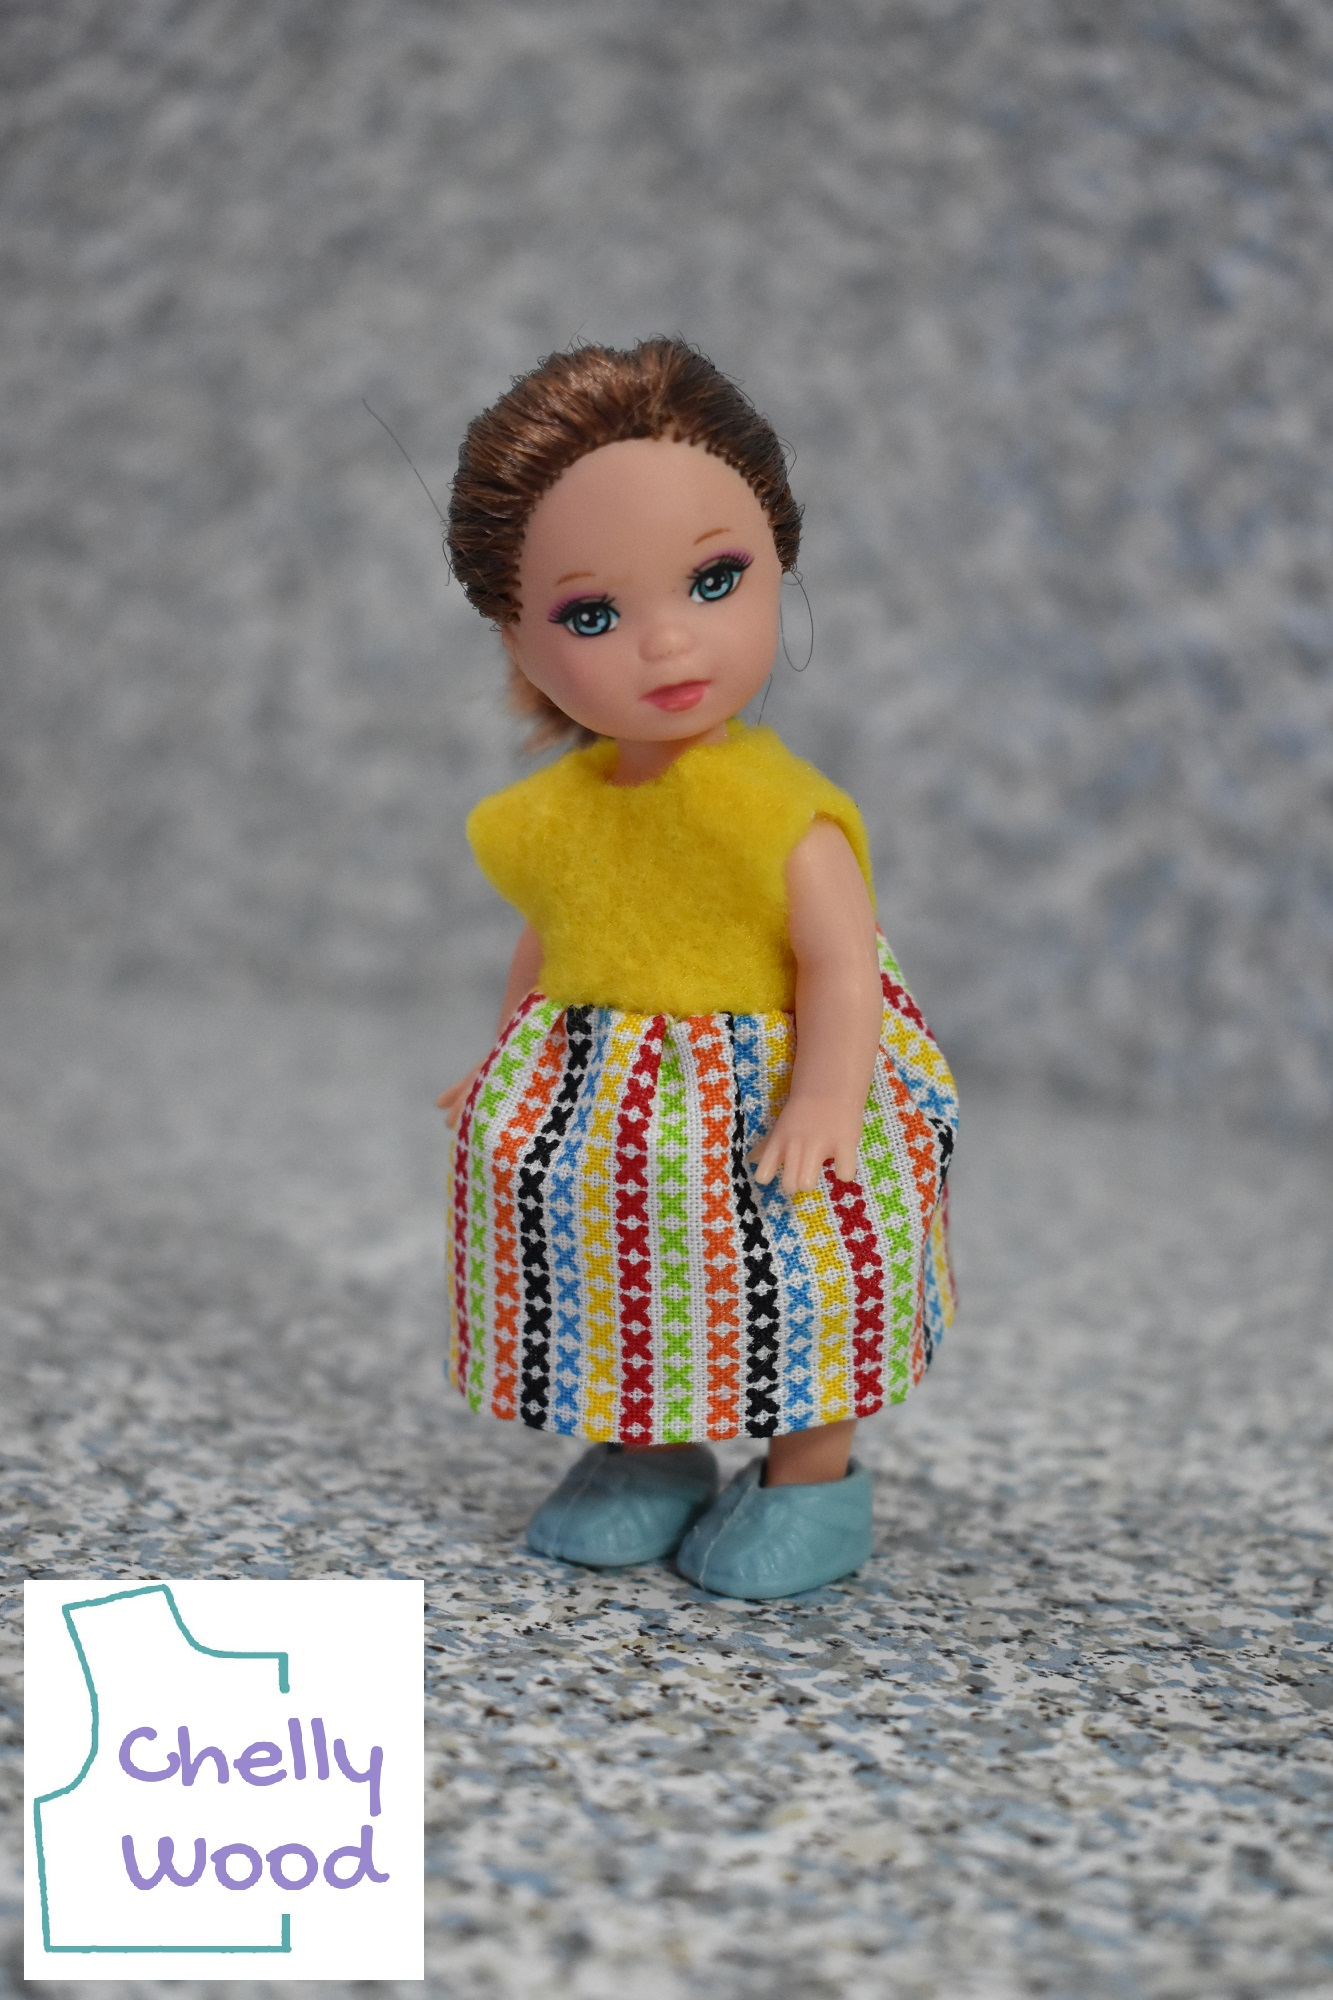 """The image shows a 4 inch (10 centimeter) Mattel Kelly doll wearing a handmade dress and standing on what appears to be a miniature concreted floor. She has auburn hair and light green eyes. Her dress is made of yellow felt on top and multi-colored cotton in the skirt area. The skirt's multi-colored fabric print has teeny-tiny X's that make a sort of striped pattern of colors: green, then orange, then black, then blue, then yellow, then red, then back to green. The doll wears tiny hard plastic blue shoes on her itty bitty feet. We also see the watermark that says, """"Chelly Wood"""" inside the shape of a bodice pattern."""